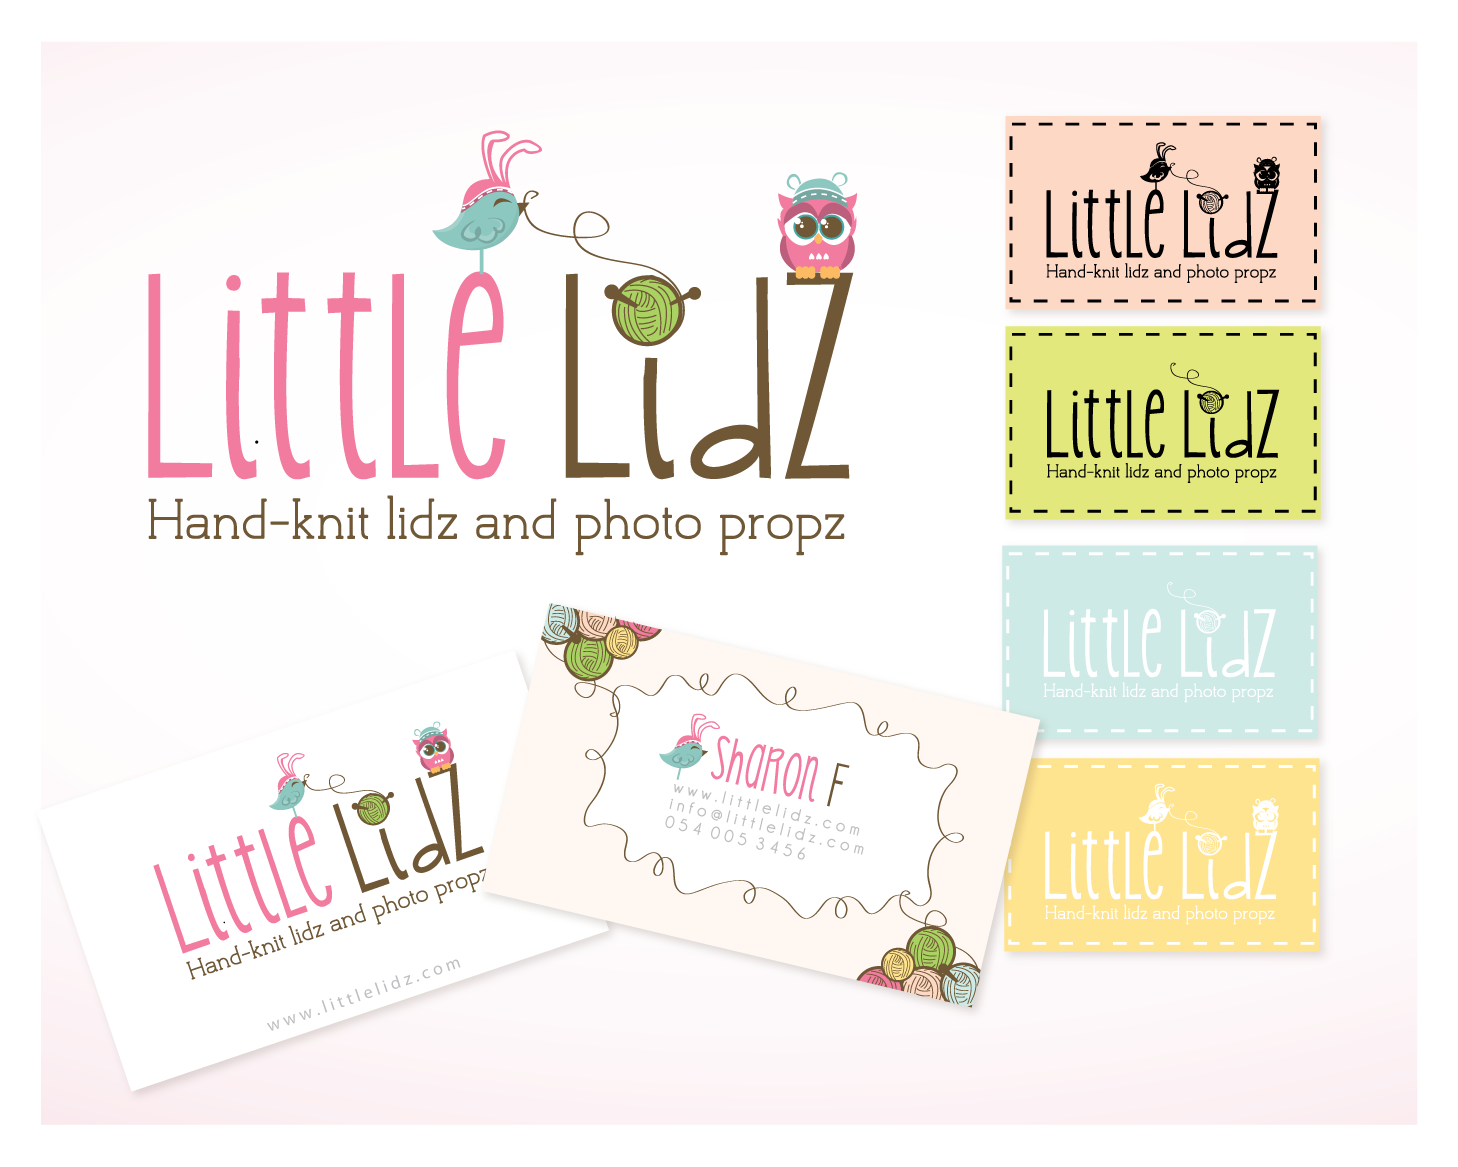 """Little Lidz"" needs a logo!!!"